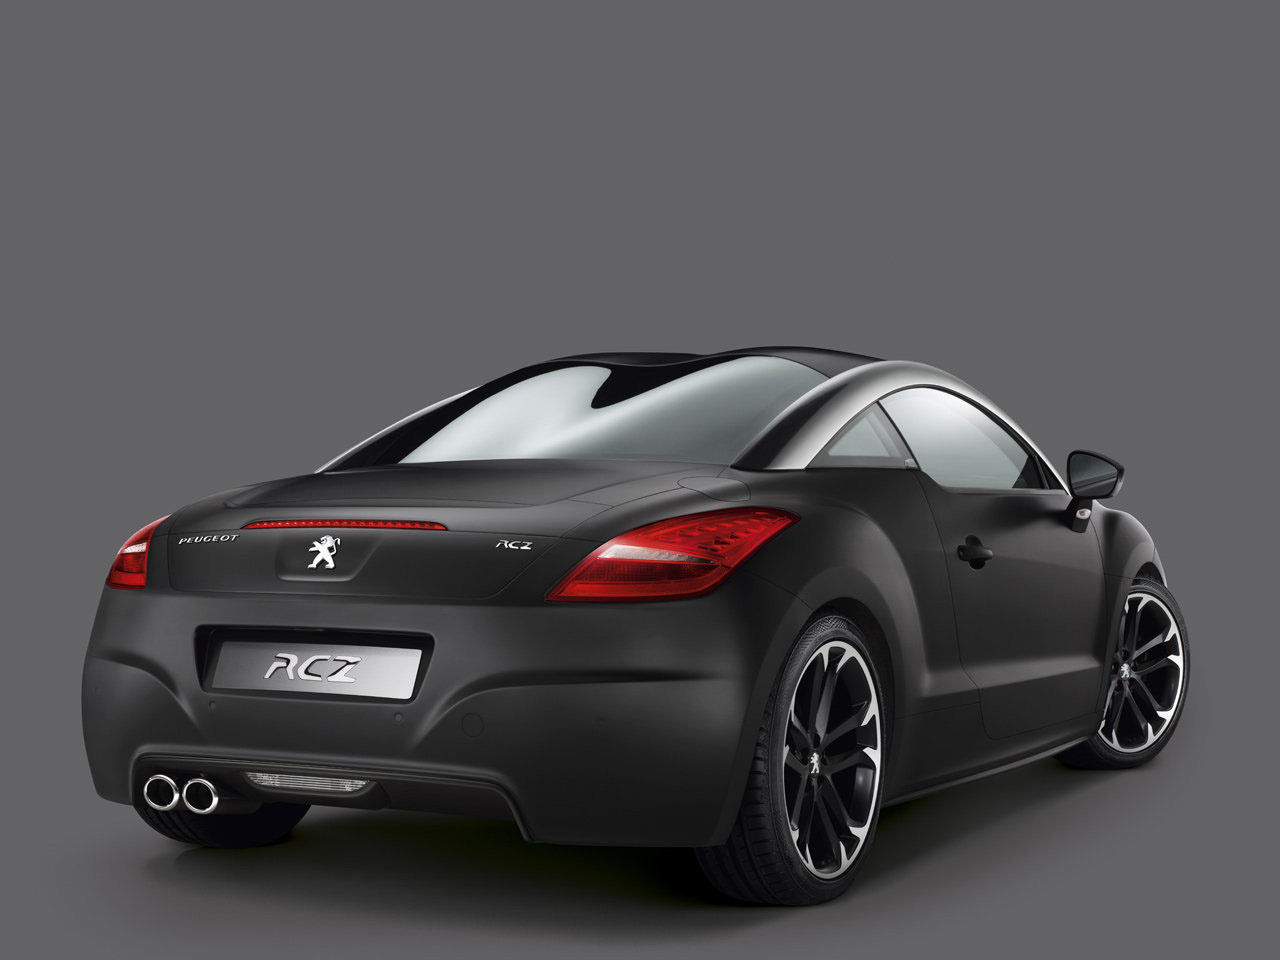 peugeot rcz asphalt 2 extravaganzi. Black Bedroom Furniture Sets. Home Design Ideas